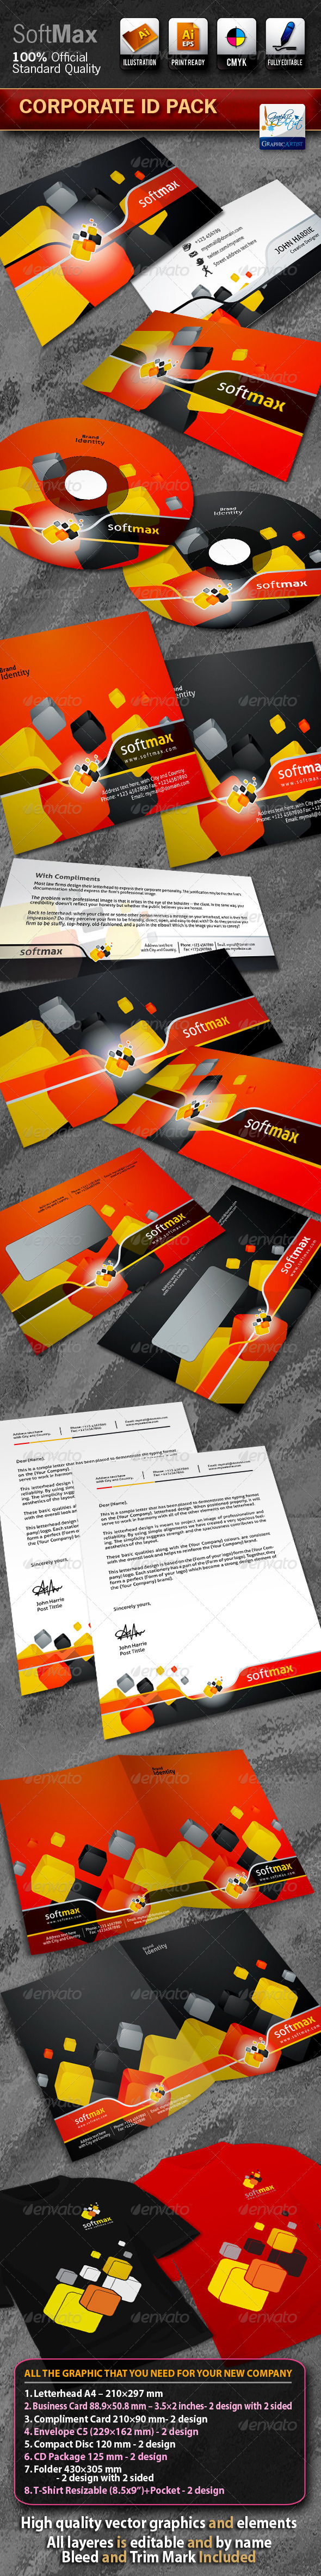 SoftMax Business Corporate ID Pack With Logo - Stationery Print Templates